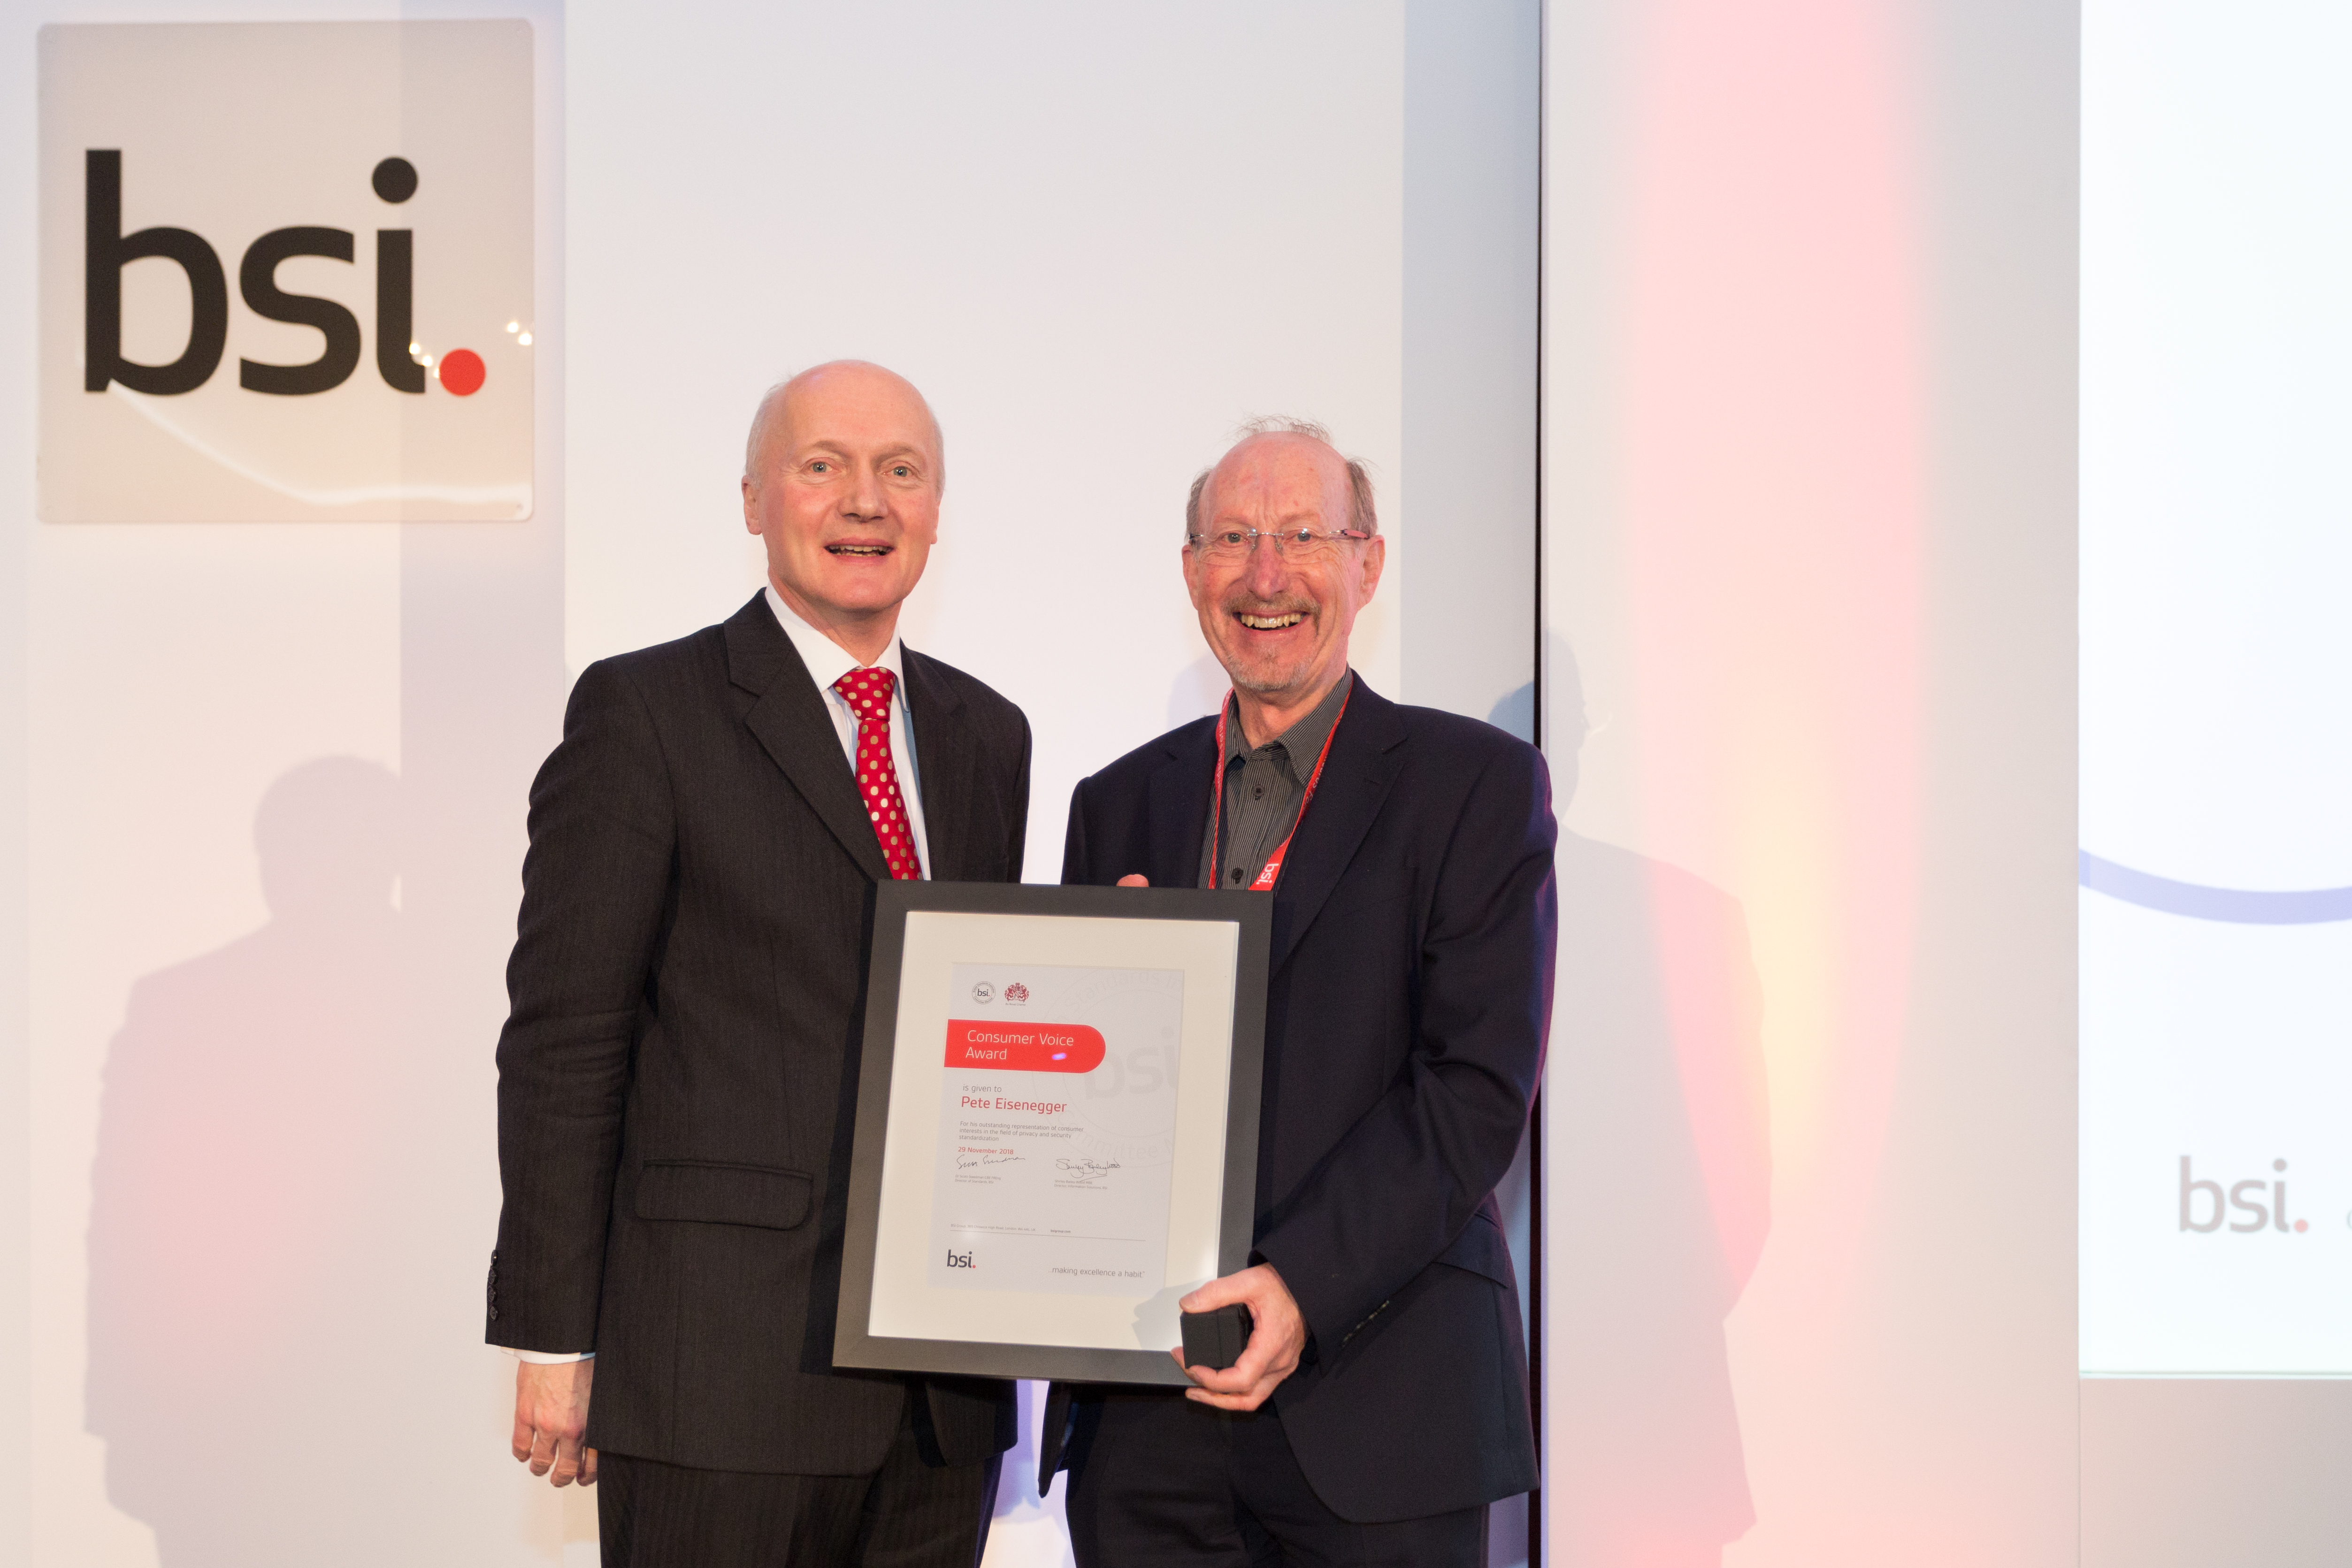 Peter Eisenegger receiving award